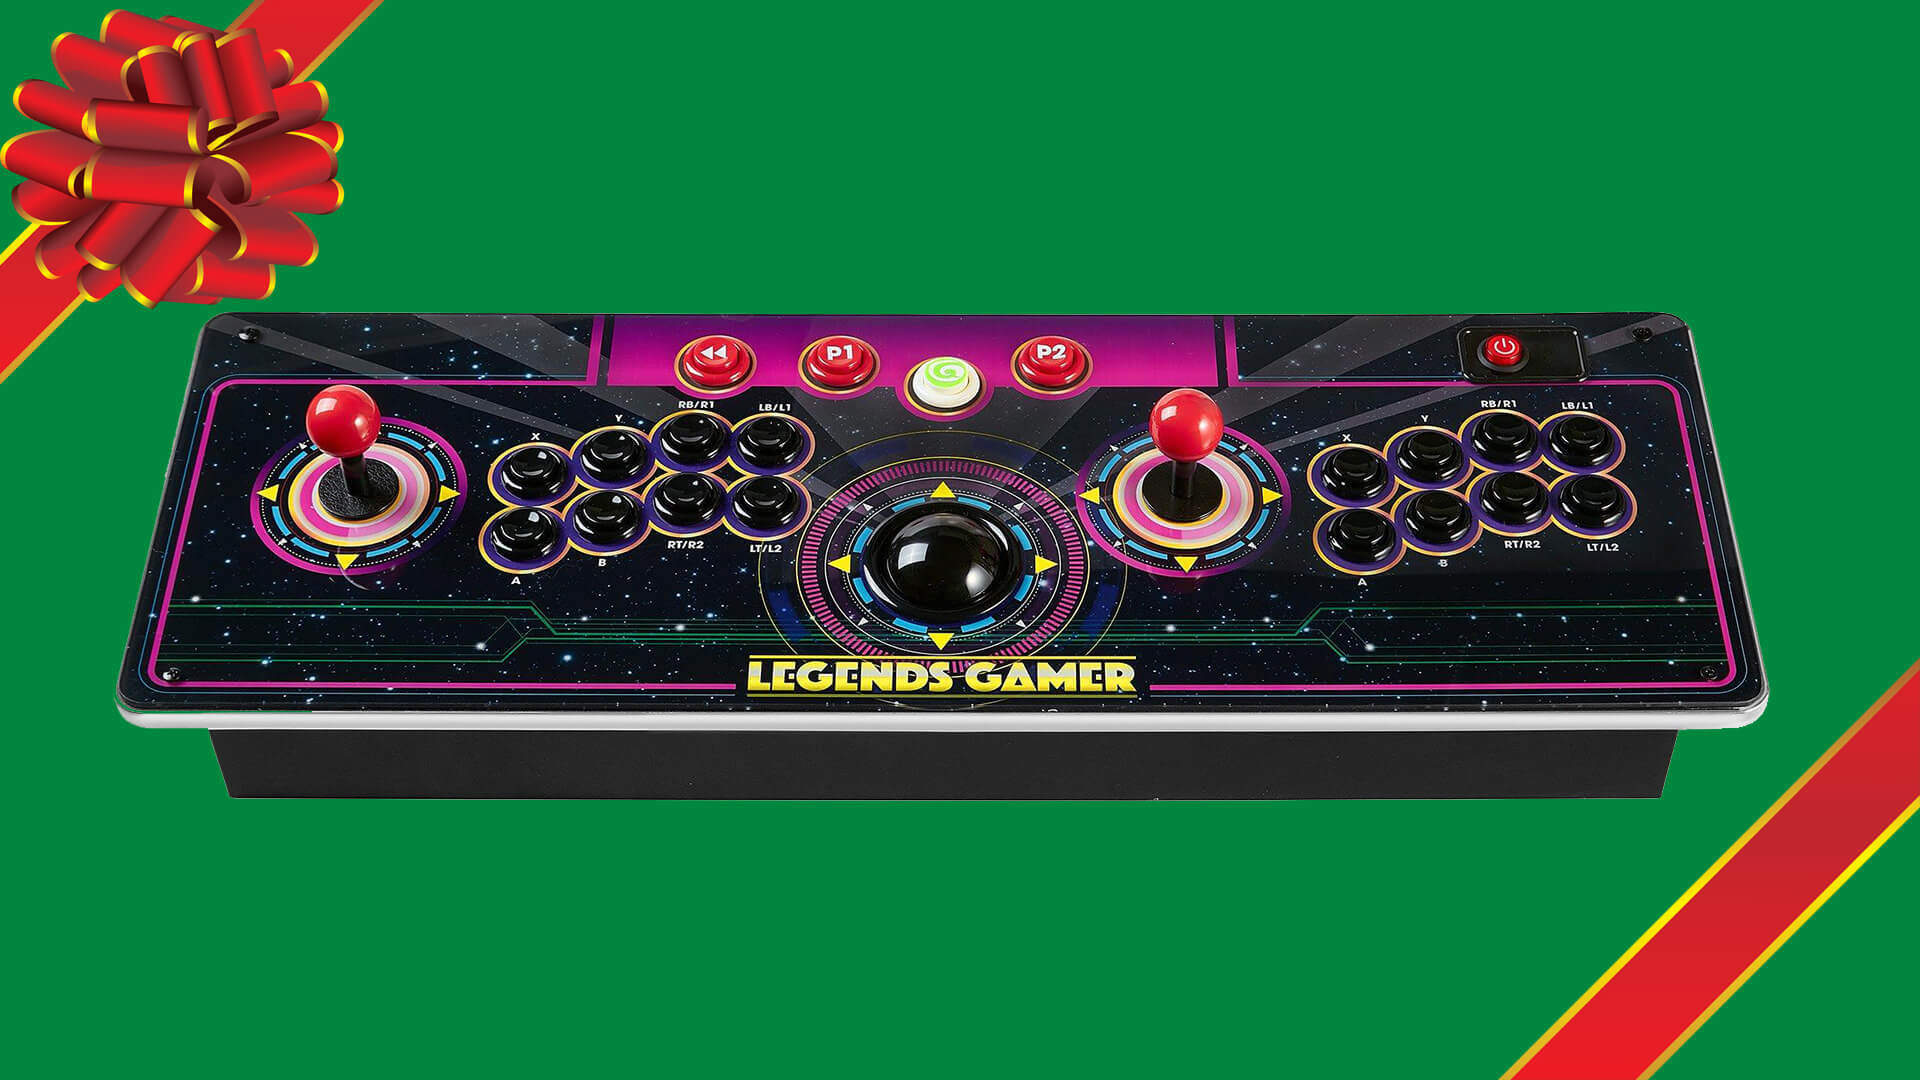 Legends Gamer Pro Review: Taking Arcade Games to a New Level